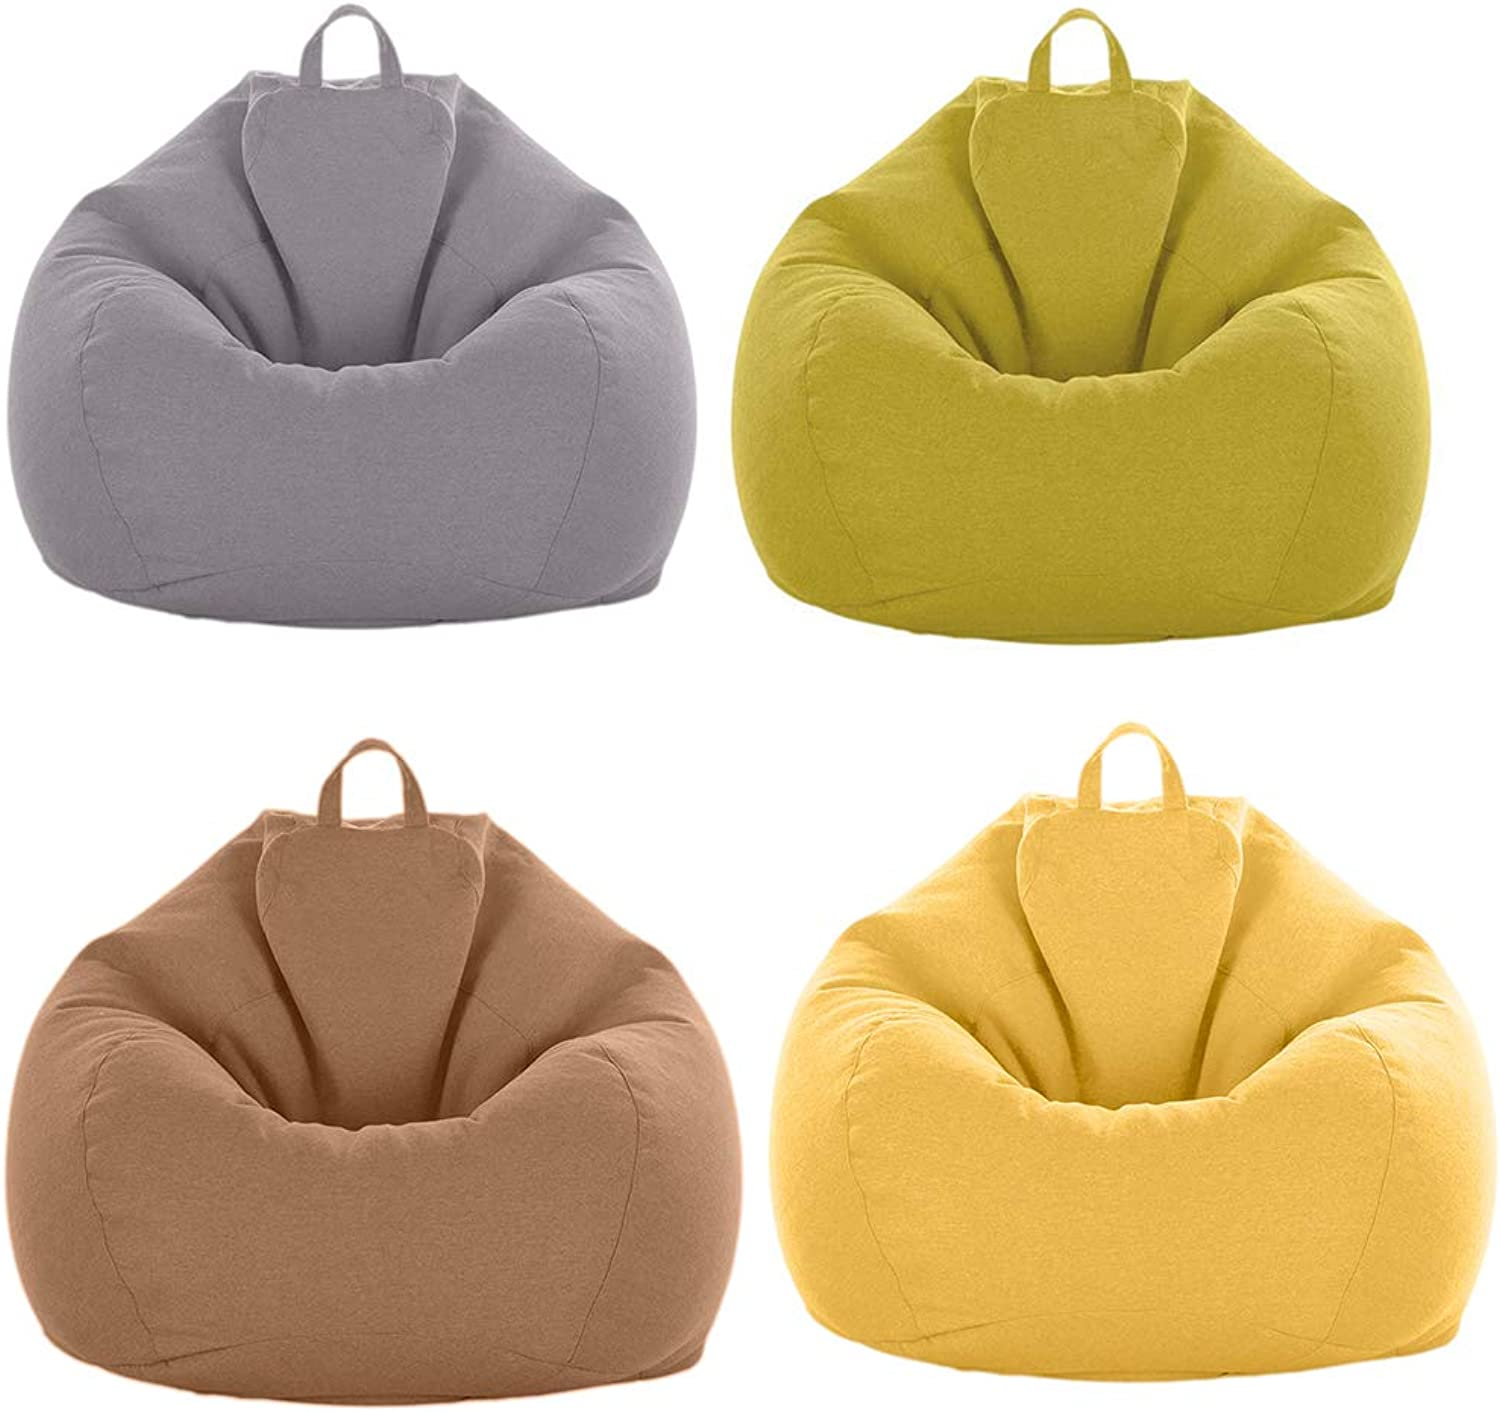 Fityle 4 Pieces Beanbag Cover Great Toys Storage Bags Simple and Easy to Use